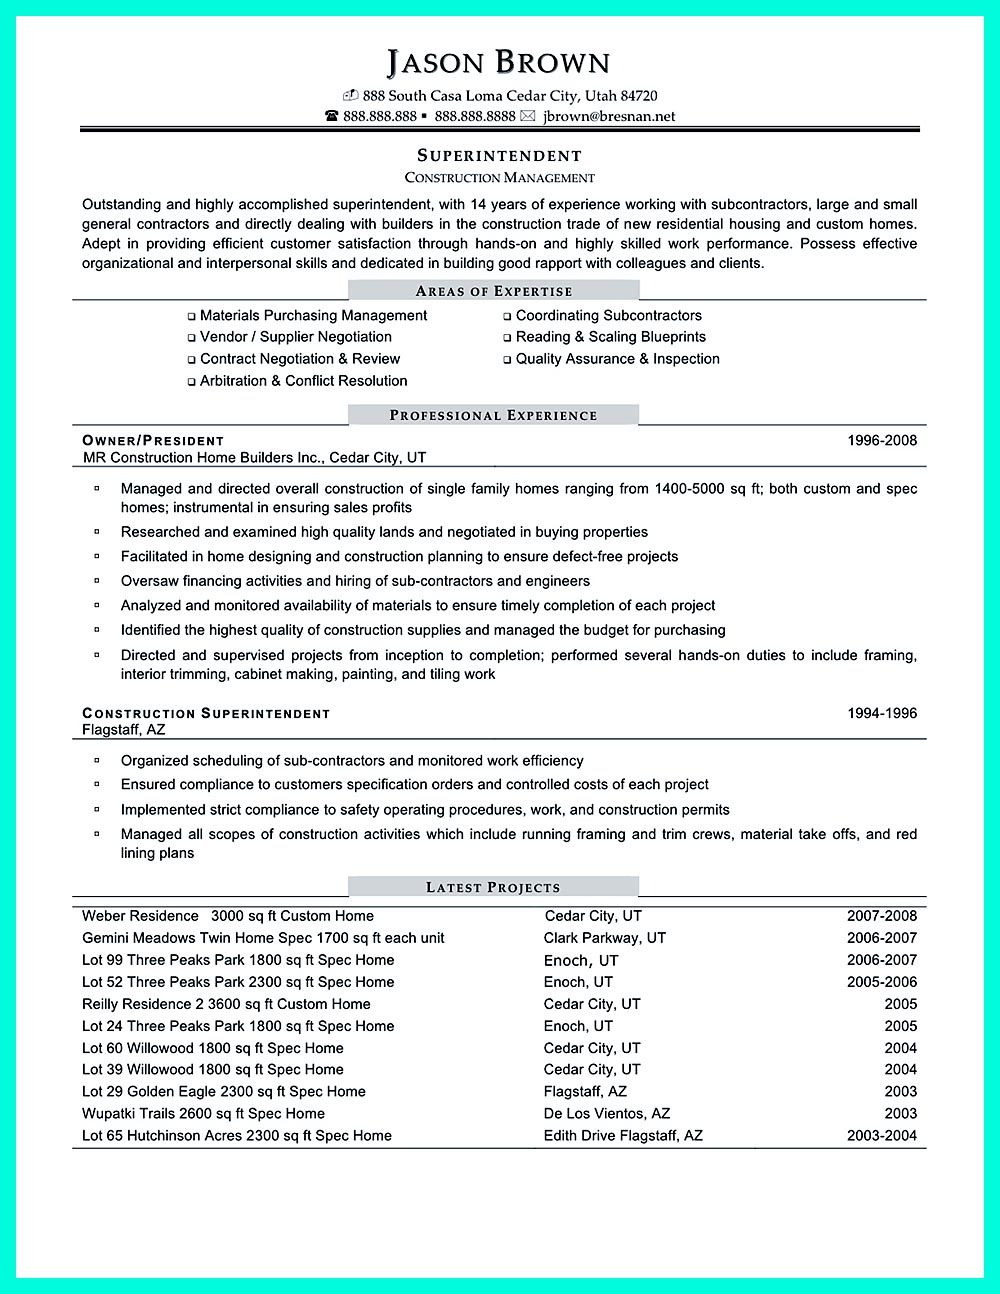 Project Management Skills Resume Construction Project Manager Resume For Experienced One Must Be